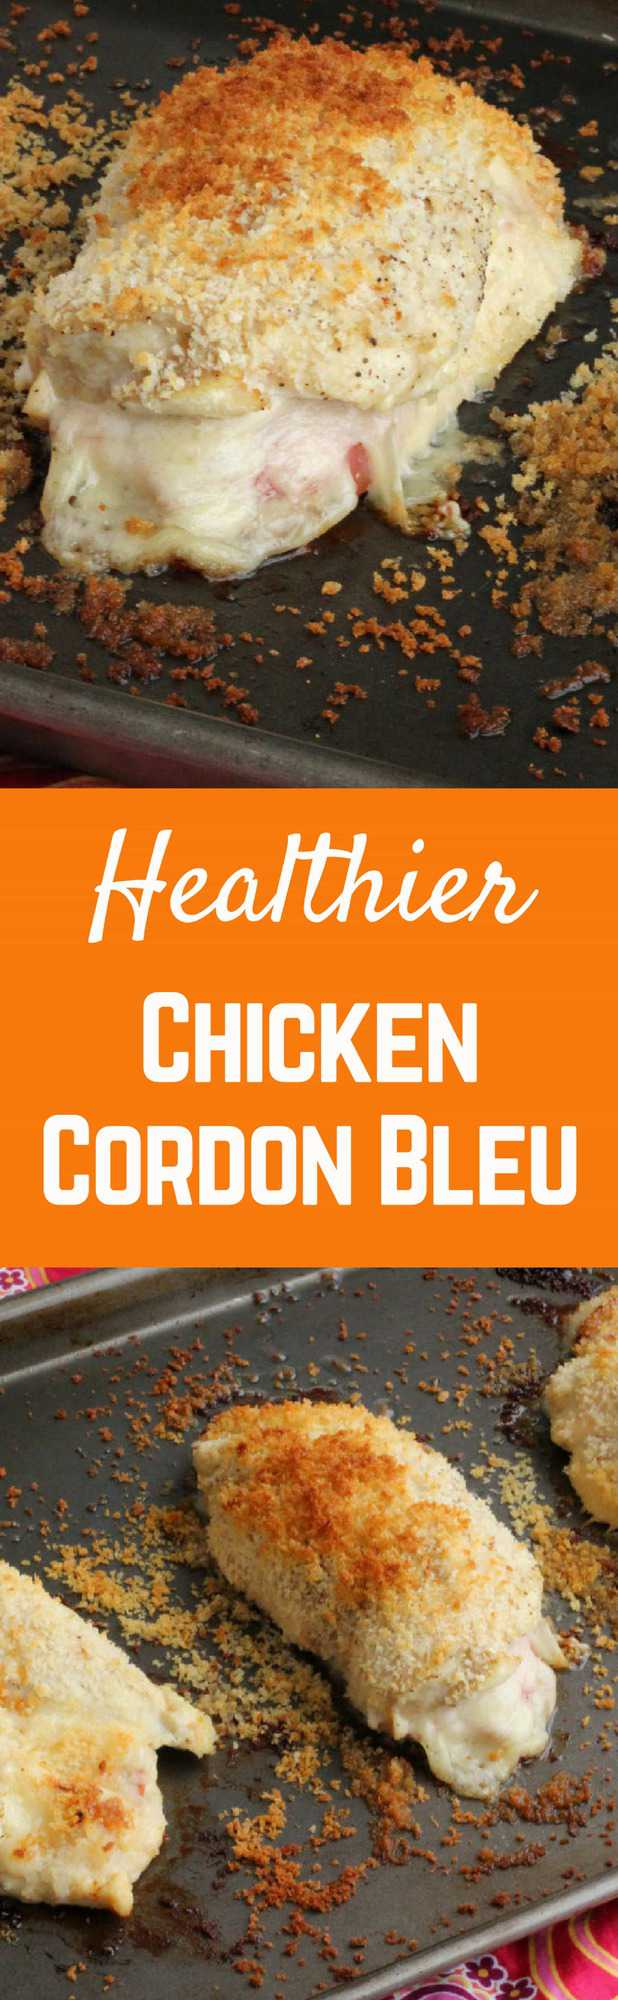 Healthier chicken cordon bleu recipe rachel cooks this healthier chicken cordon bleu tastes just as great as the fried version maybe forumfinder Gallery